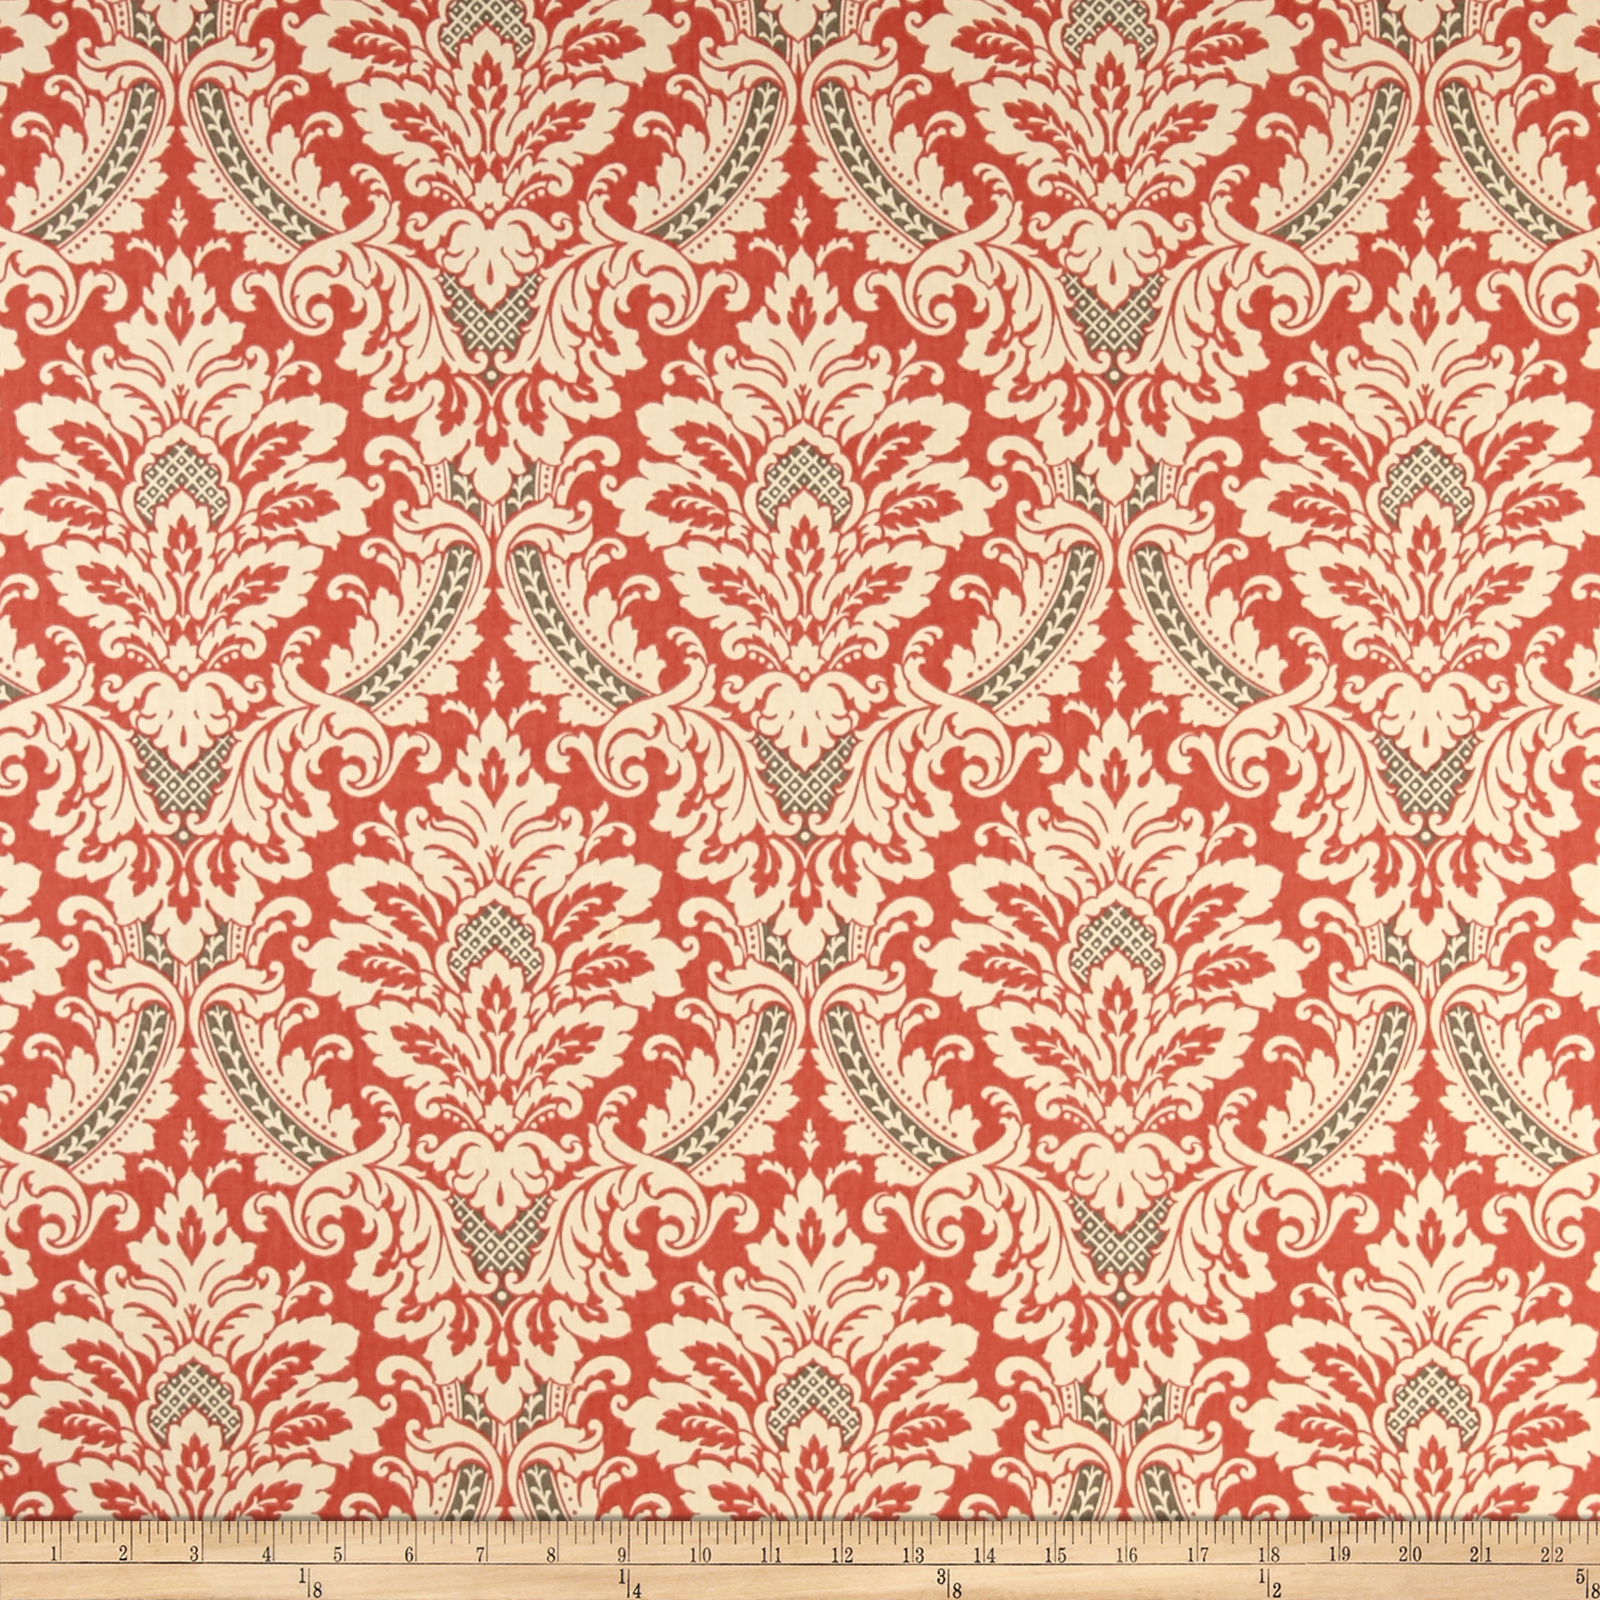 Waverly Donnington Clay Fabric by Waverly in USA